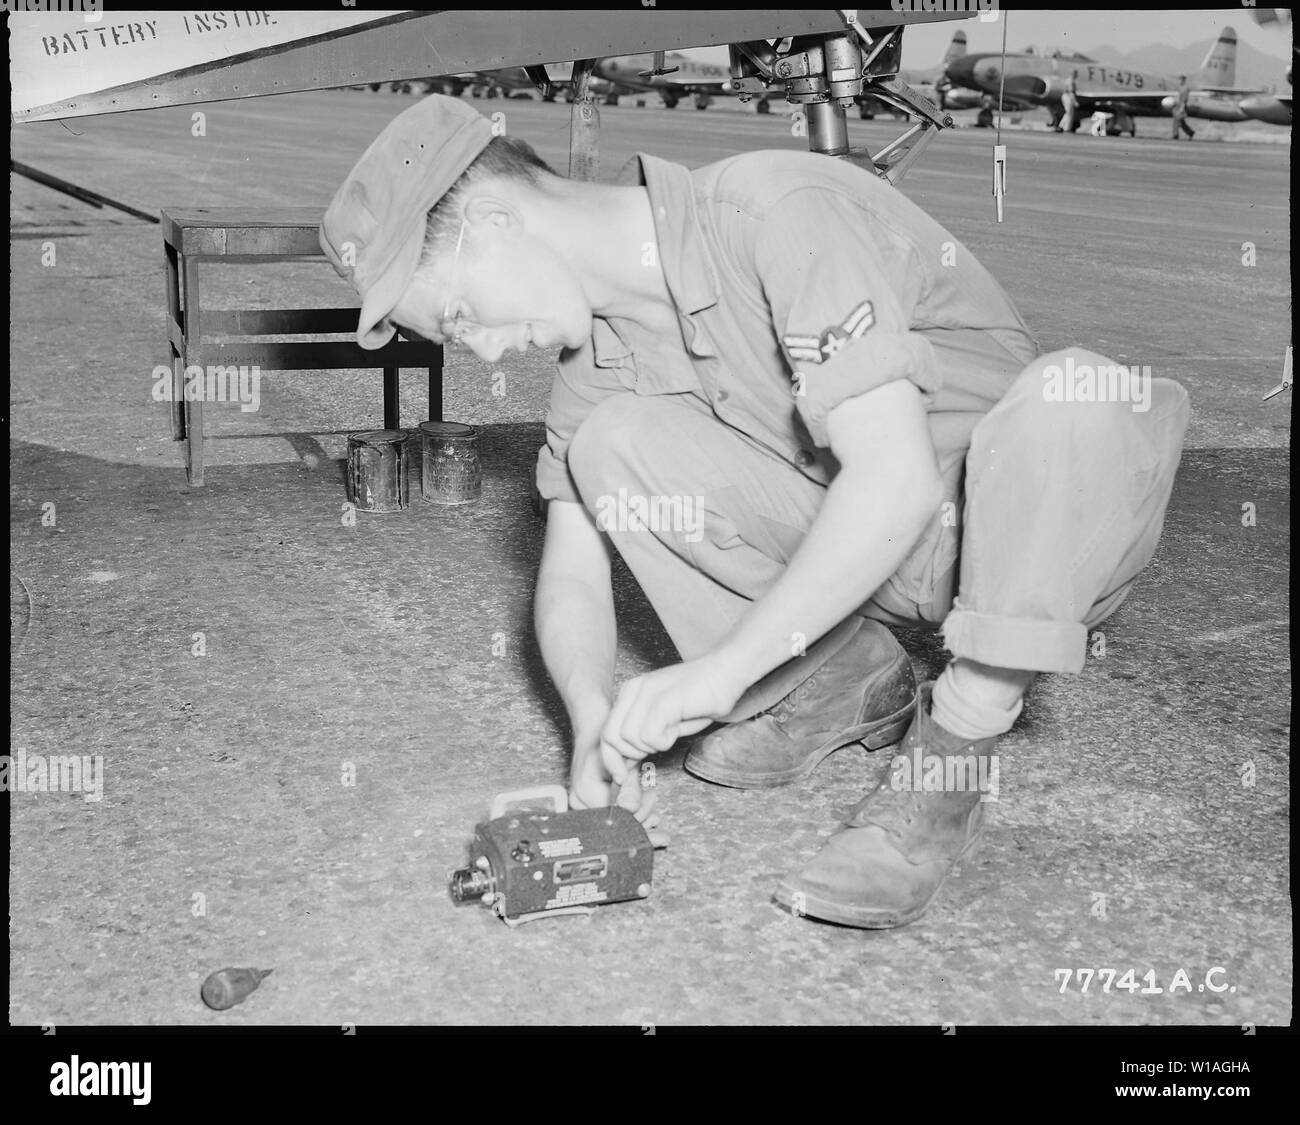 AERIAL BROWNIE. Gun cameras are synchronized with the .50 calibre machine gun fire on U.S. Air Force F-80 jet fighters and record every strike against the North Korean aggressors. Here, Cpl. Harvey Davis, 19, of Redfield, Kansas, inspects one of the gun cameras after an F-80 close support mission. - Stock Image